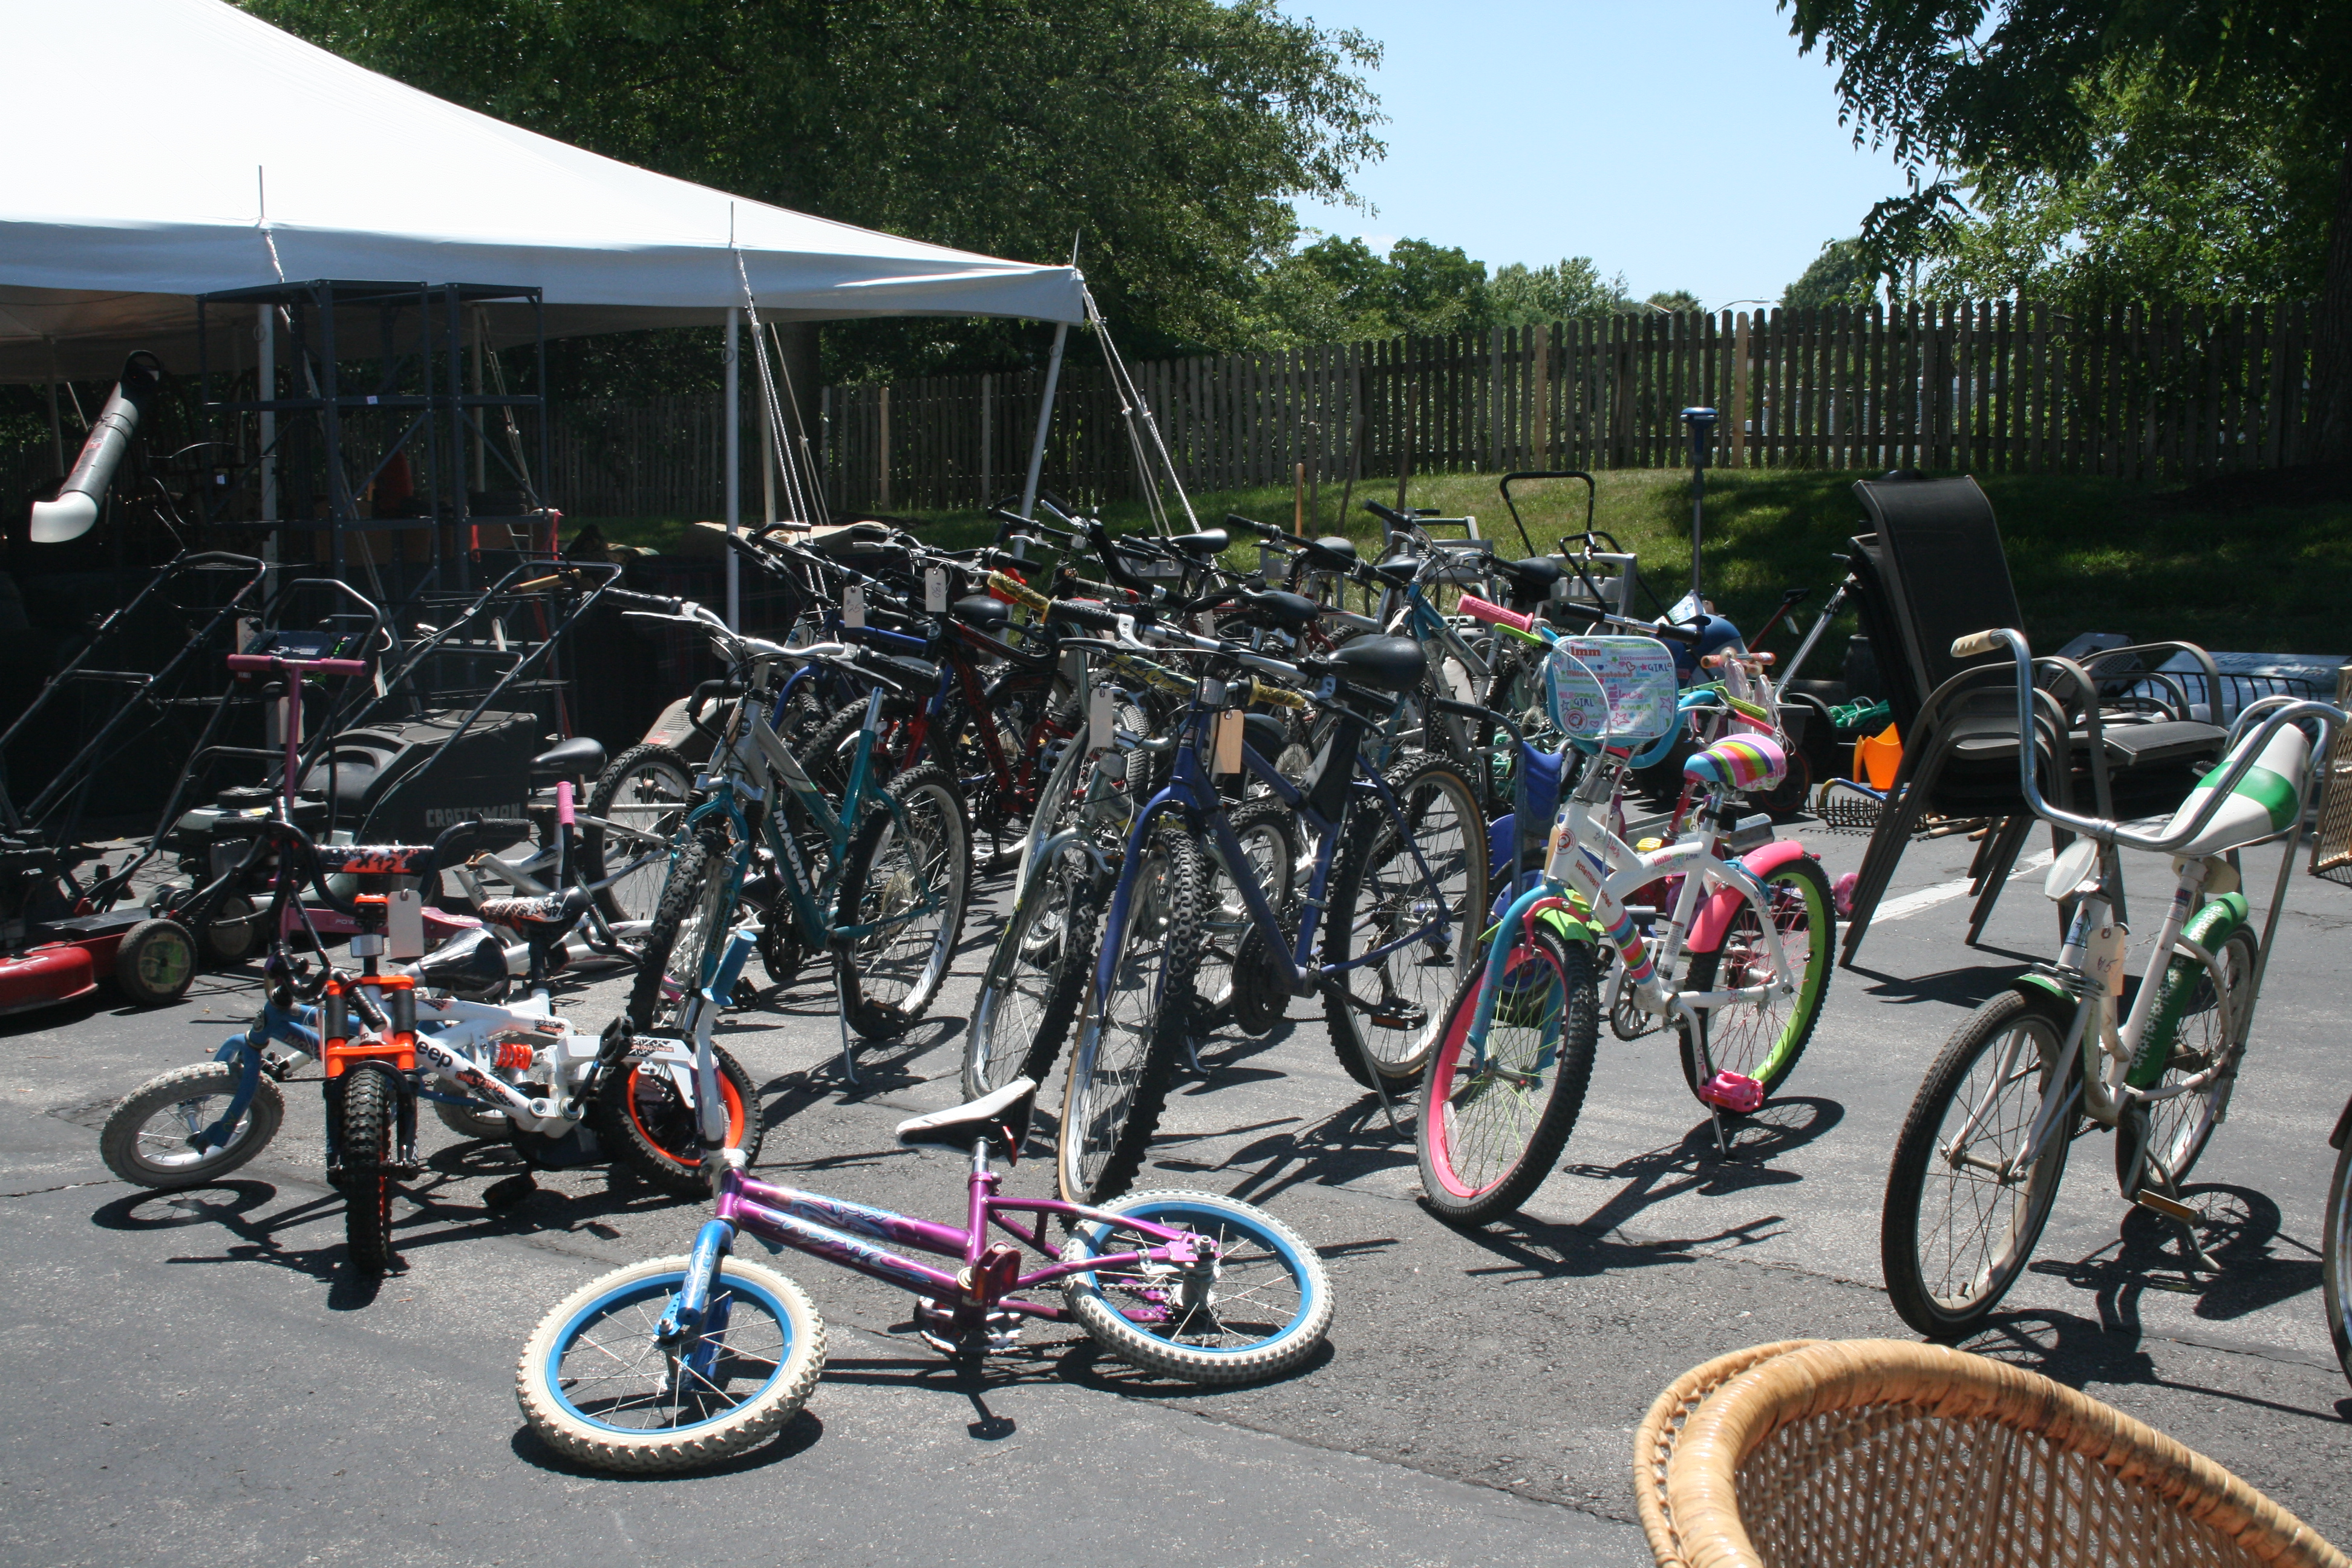 garage sale bikes - Church of the Ascension